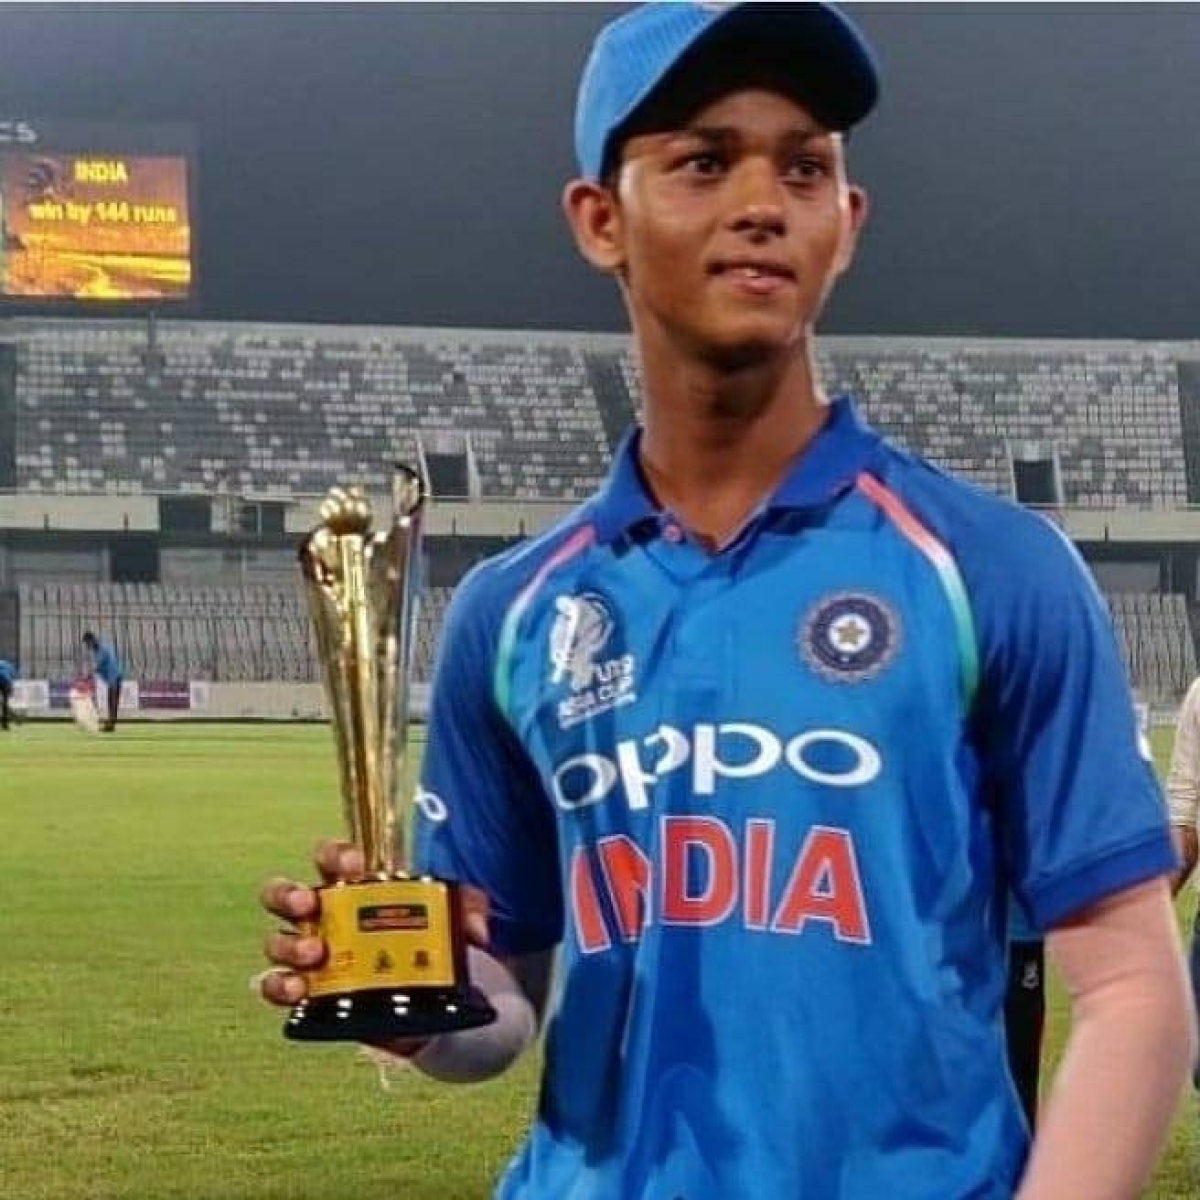 'Hope that he makes it to the senior side soon': Kanchan Jaiswal on her son's IPL selection